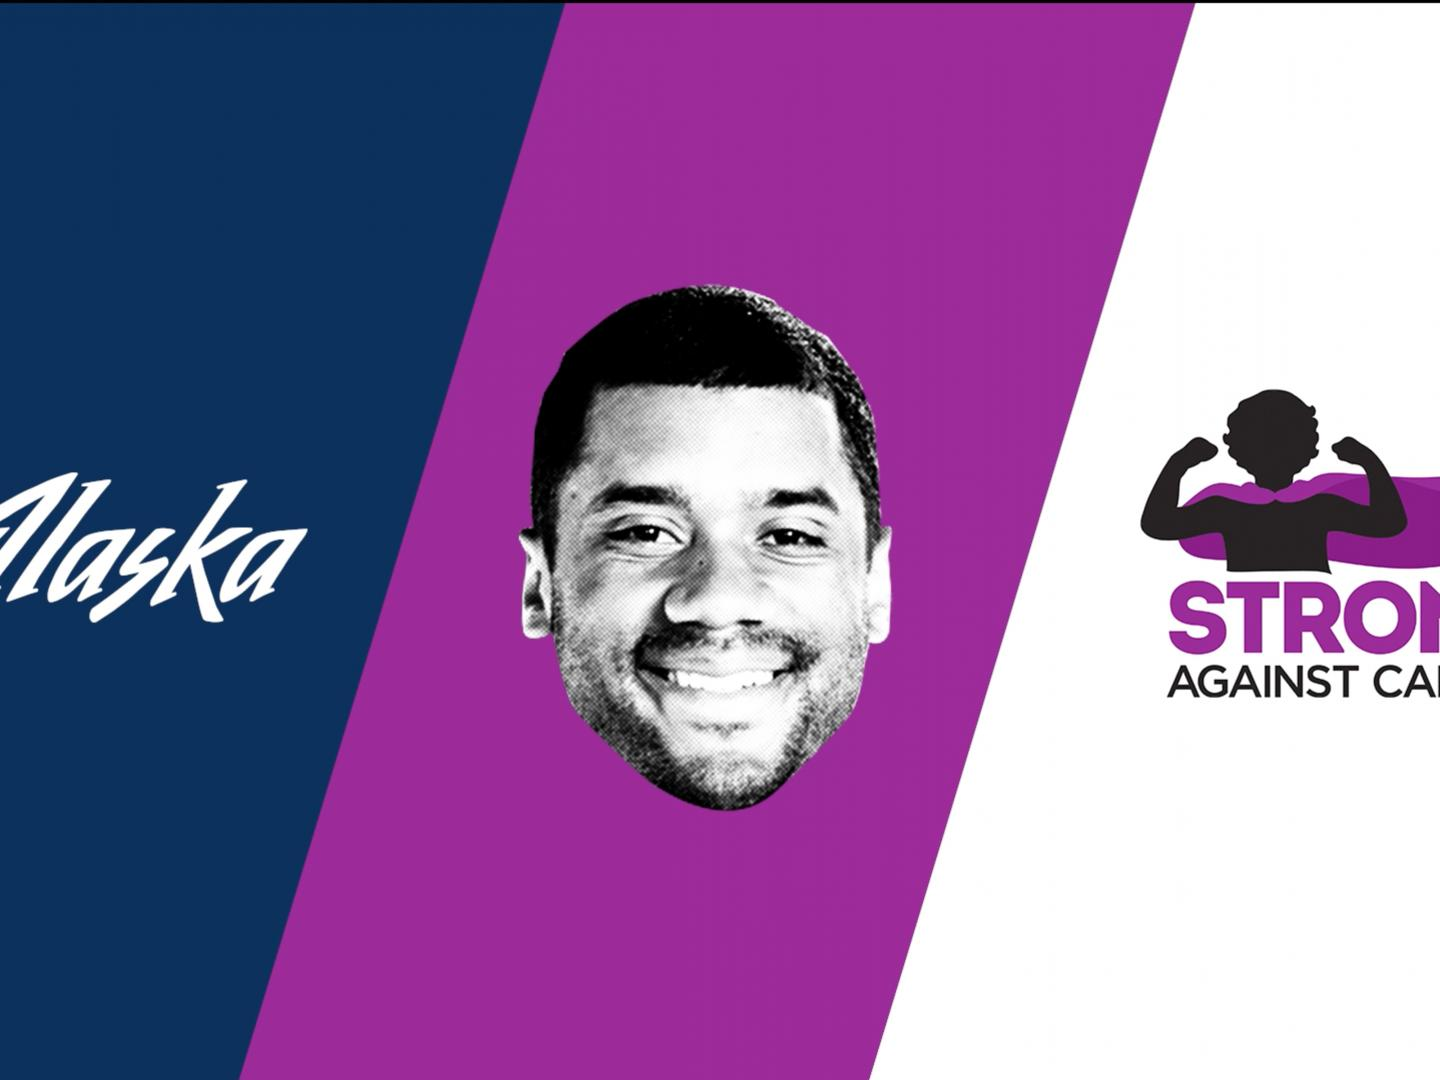 Alaska Airlines & Russell Wilson Strong Against Cancer Plane Pull Thumbnail